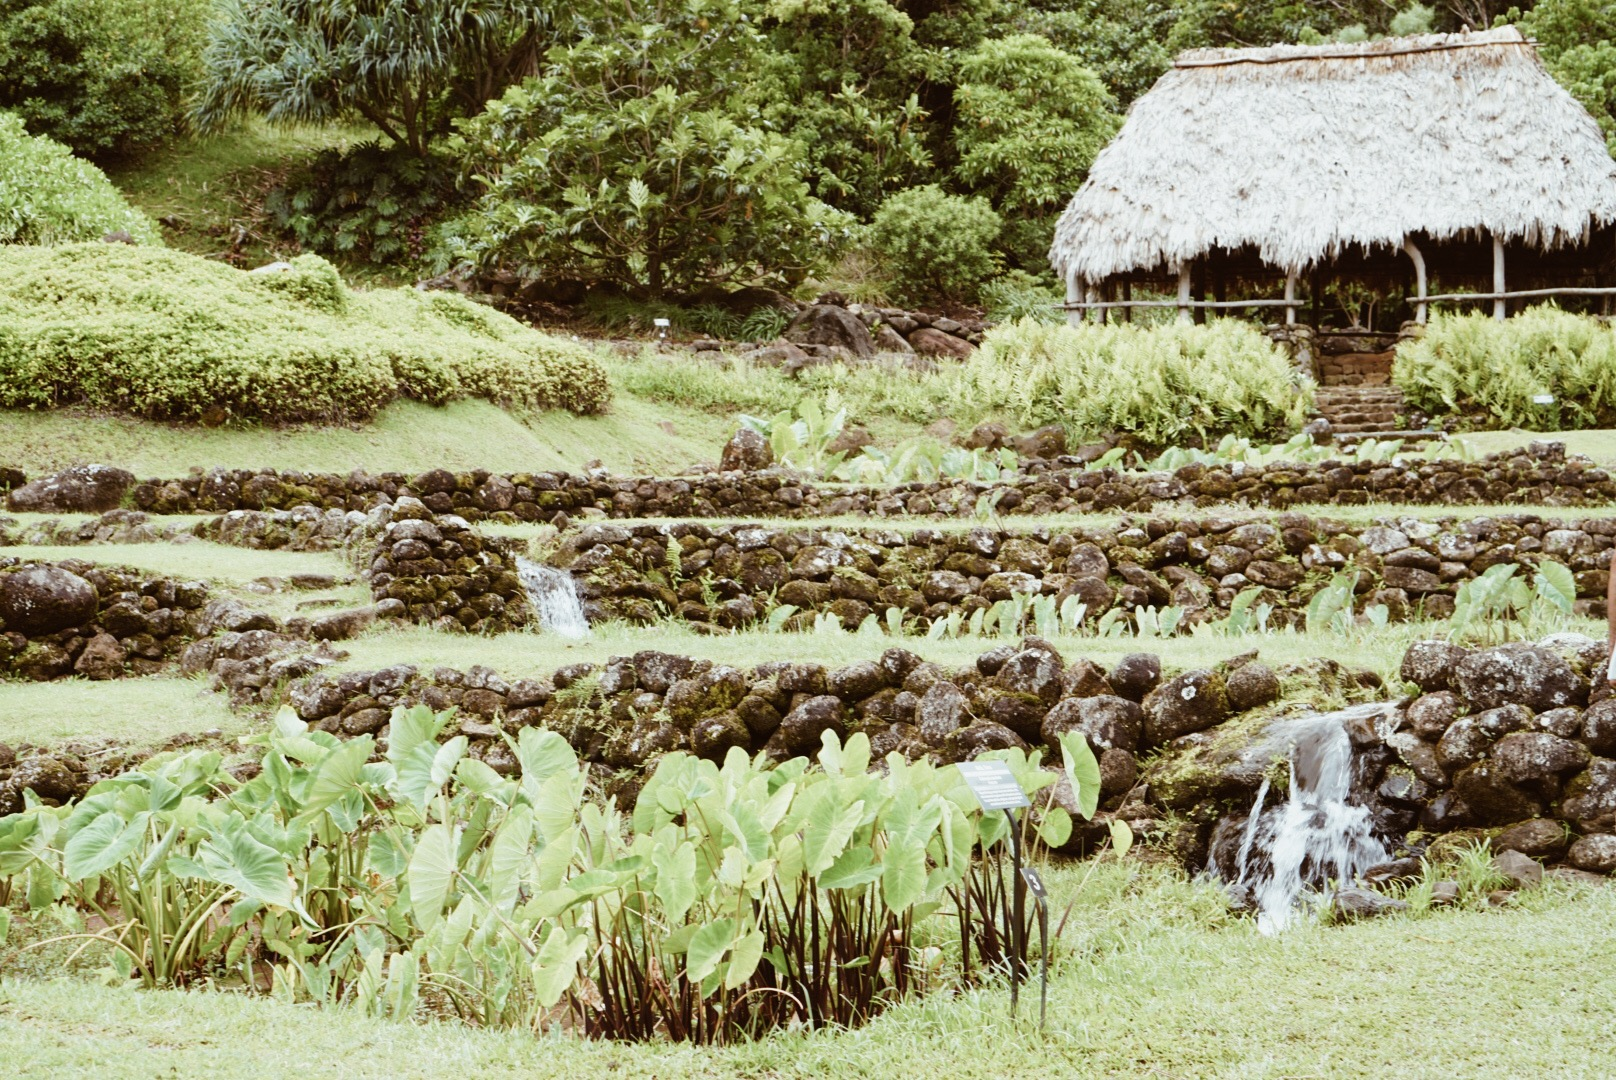 Limahuli Garden and Preserve